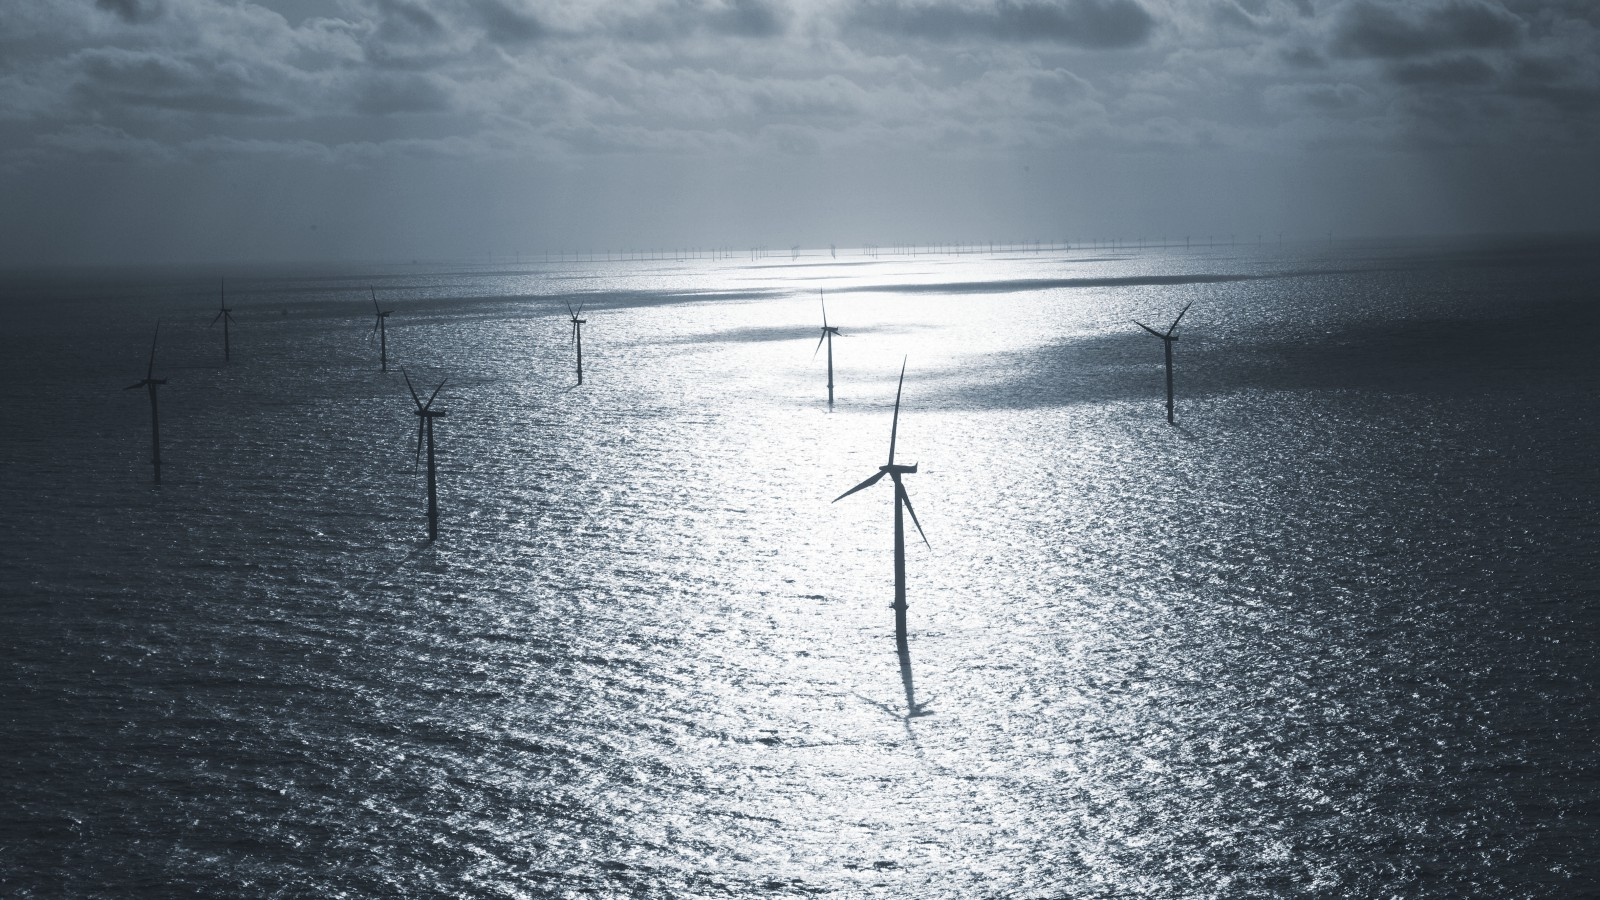 Once one of the largest offshore wind farms.